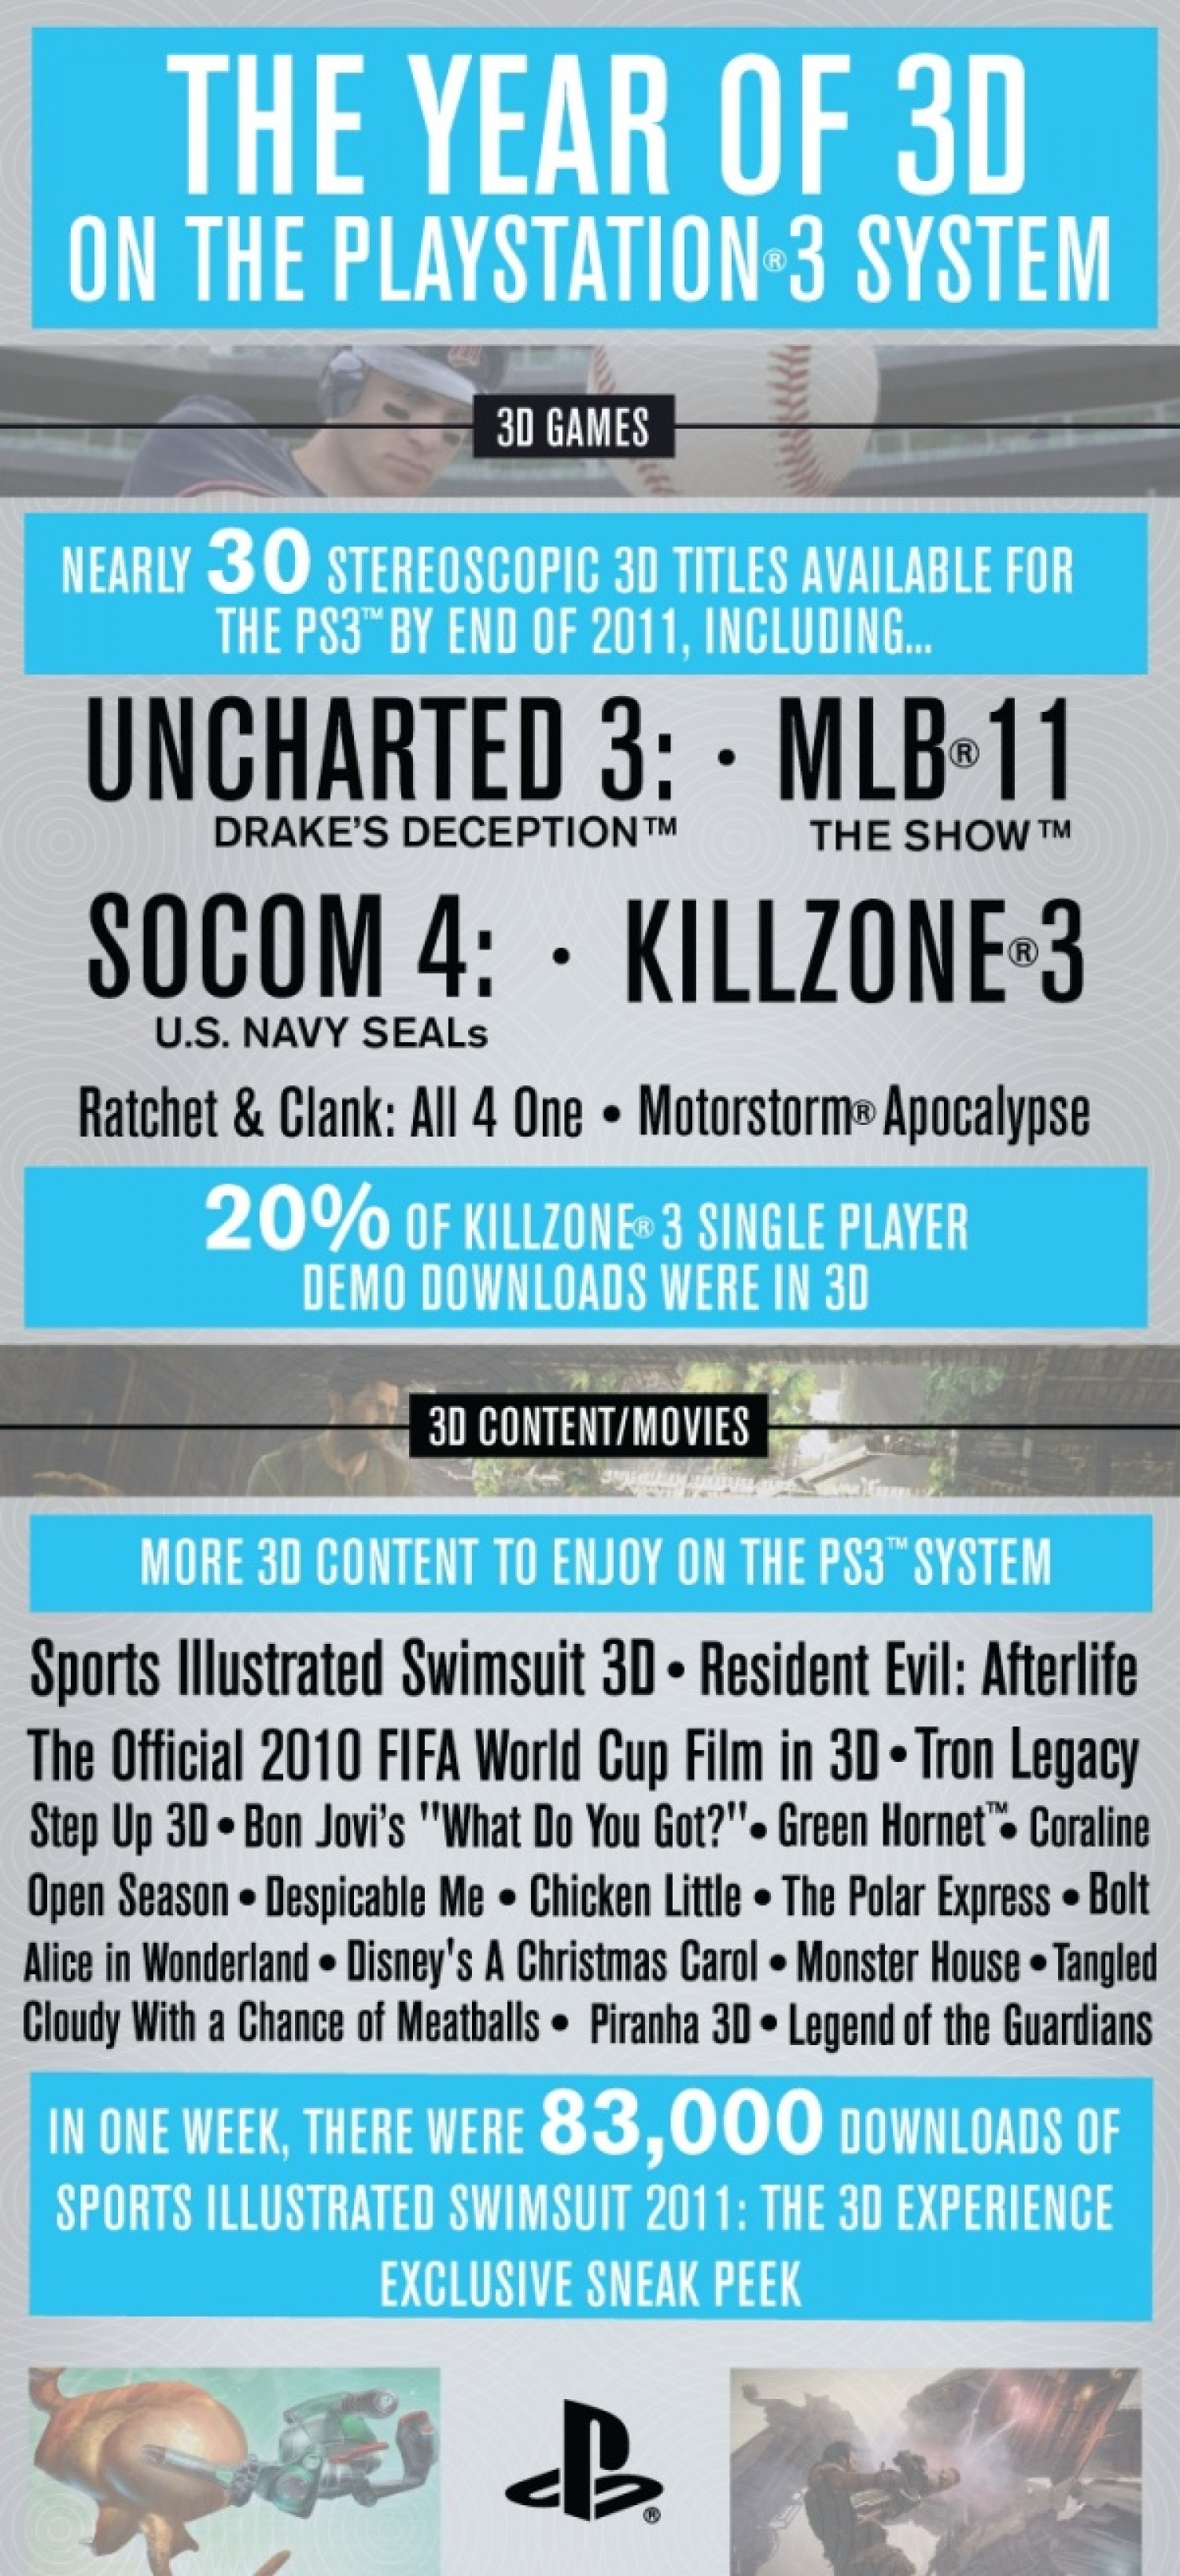 The Year of 3D on the Playstation 3 System Infographic